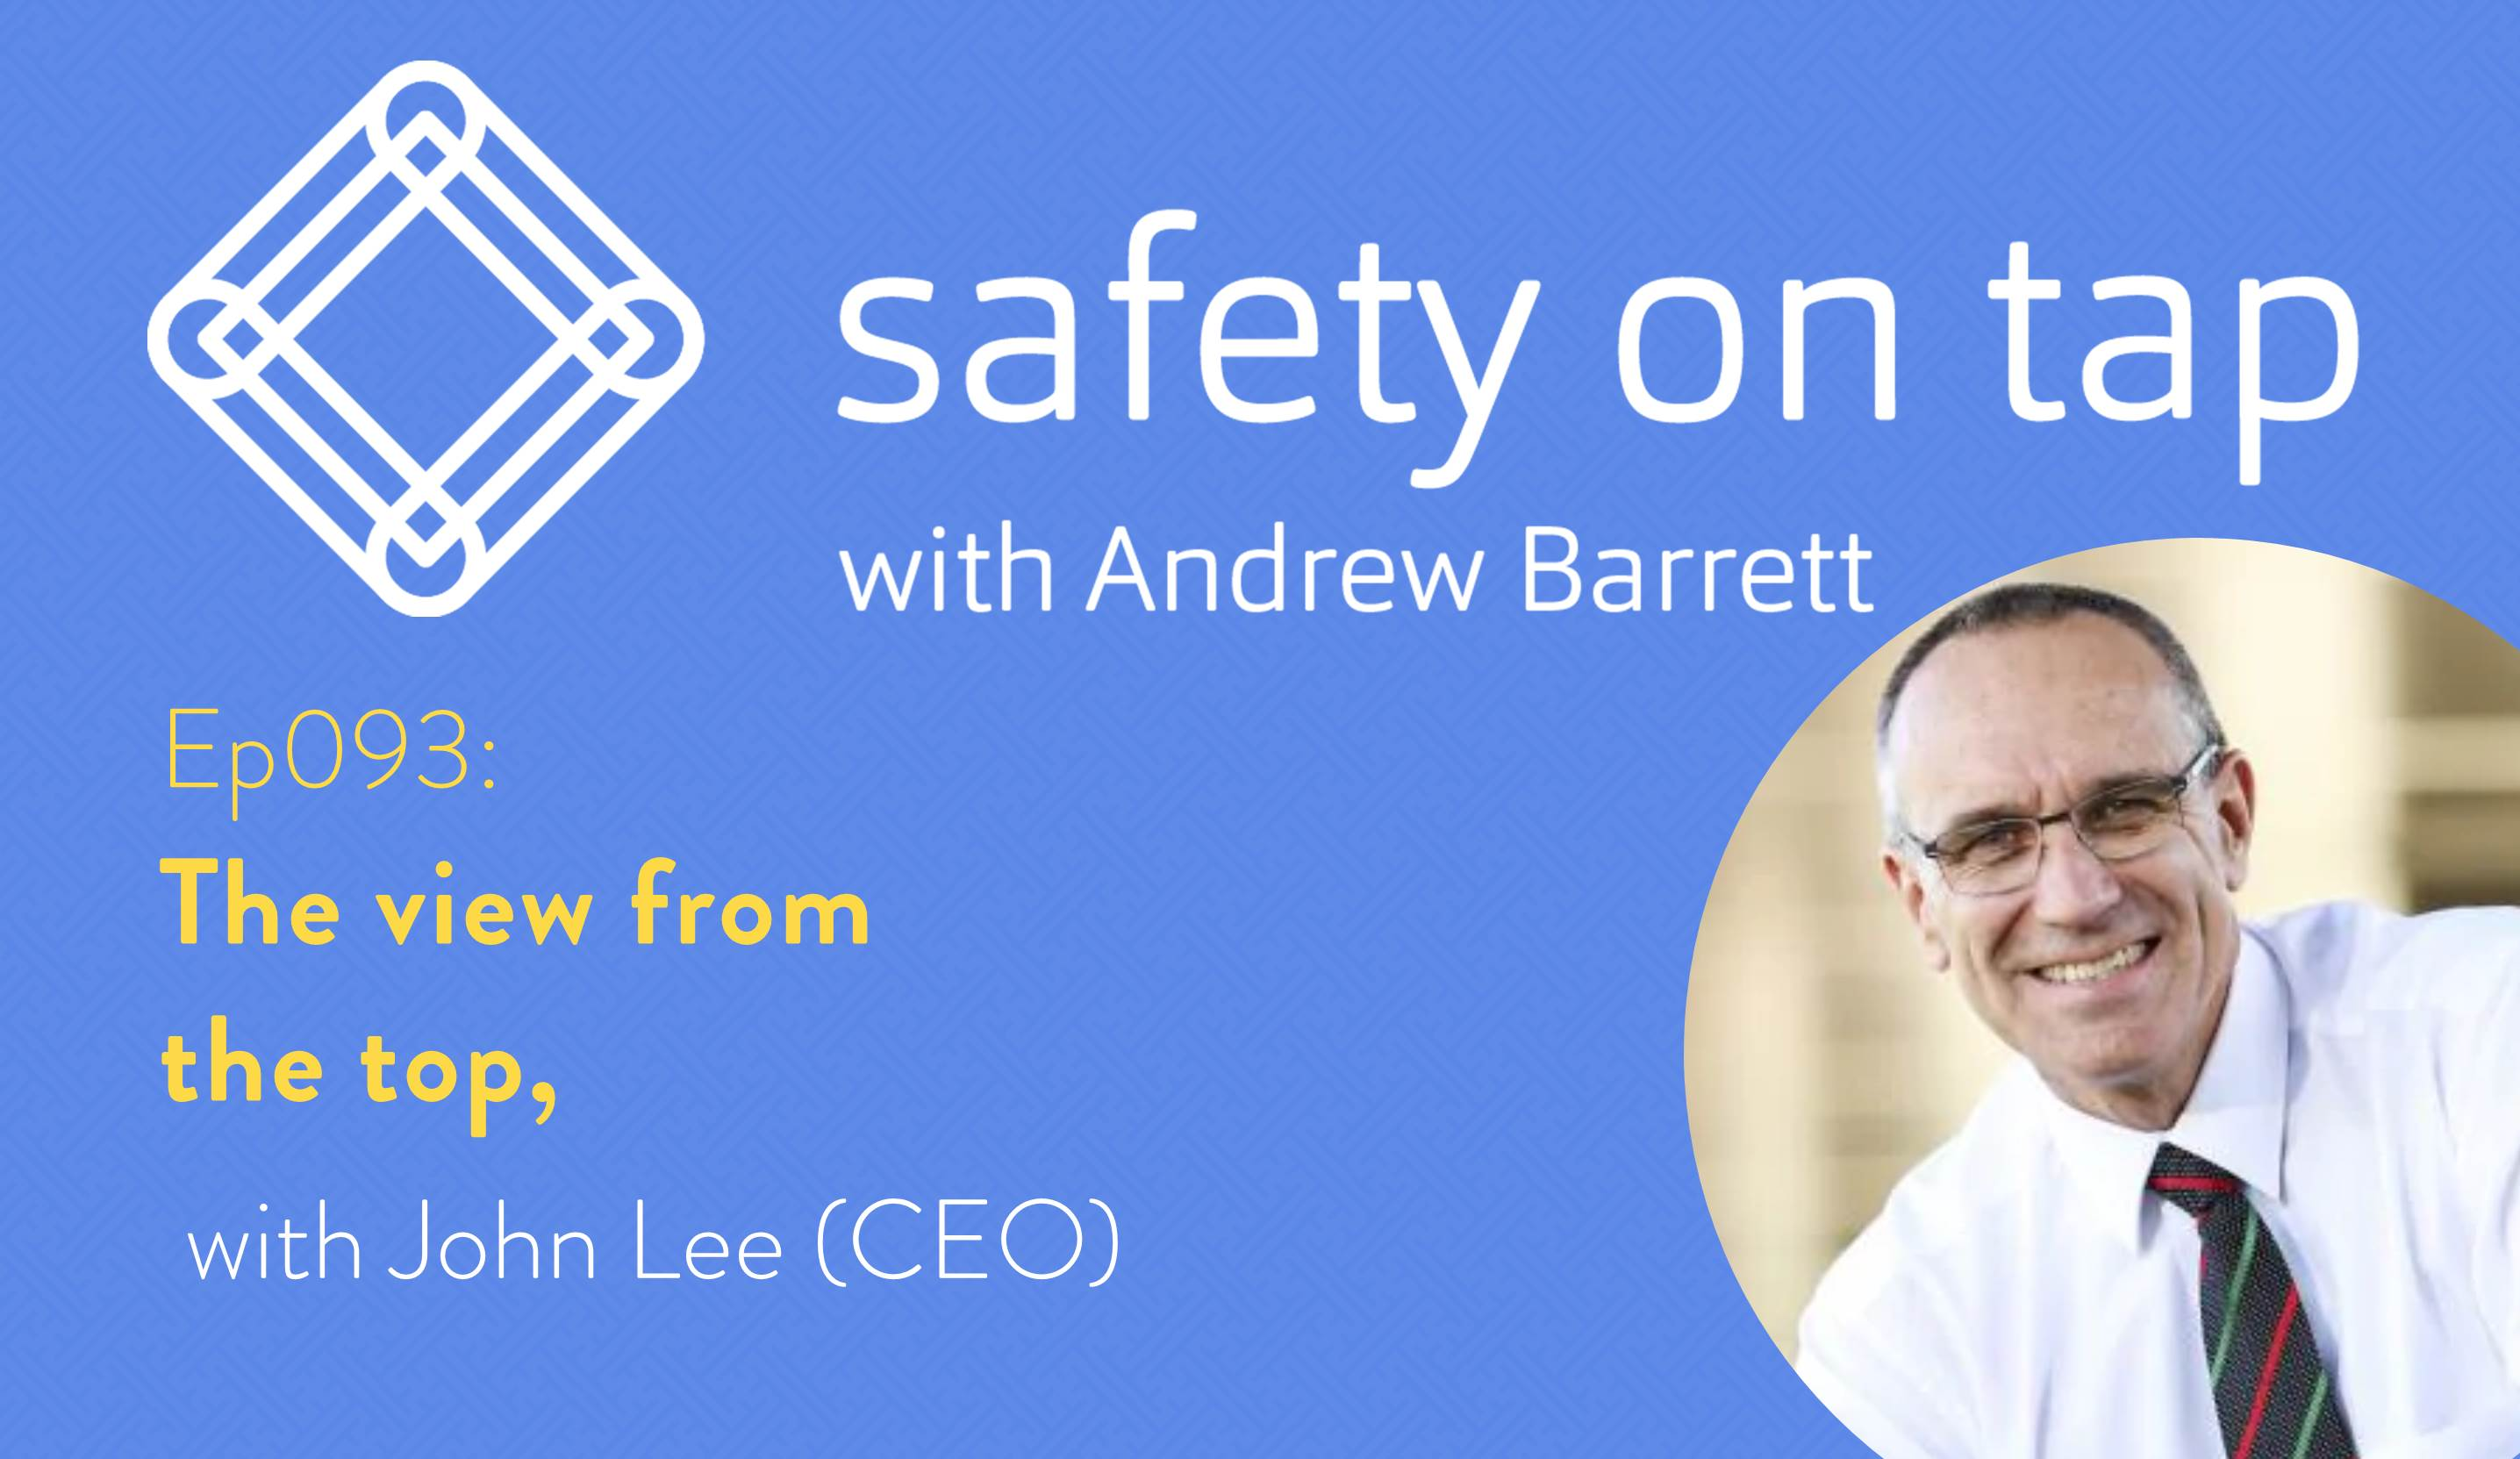 Ep093: The view from the top, with John Lee (CEO)